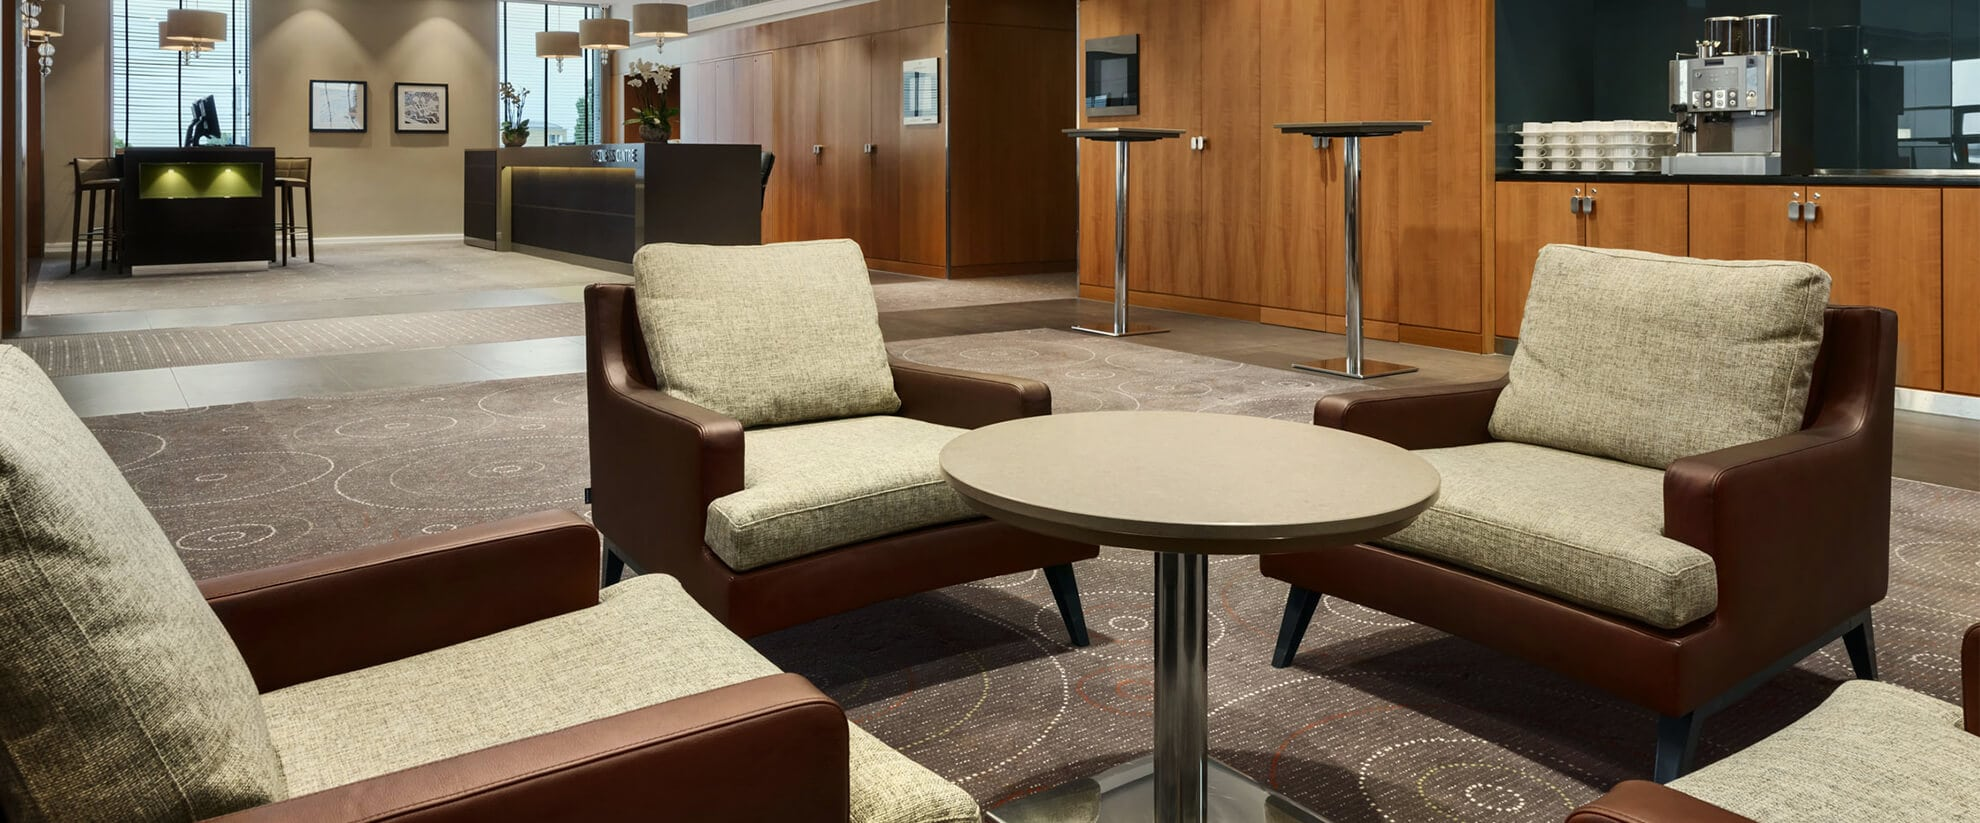 Hotel Hilton Copenhagen with Dansk Wilton carpet solutions